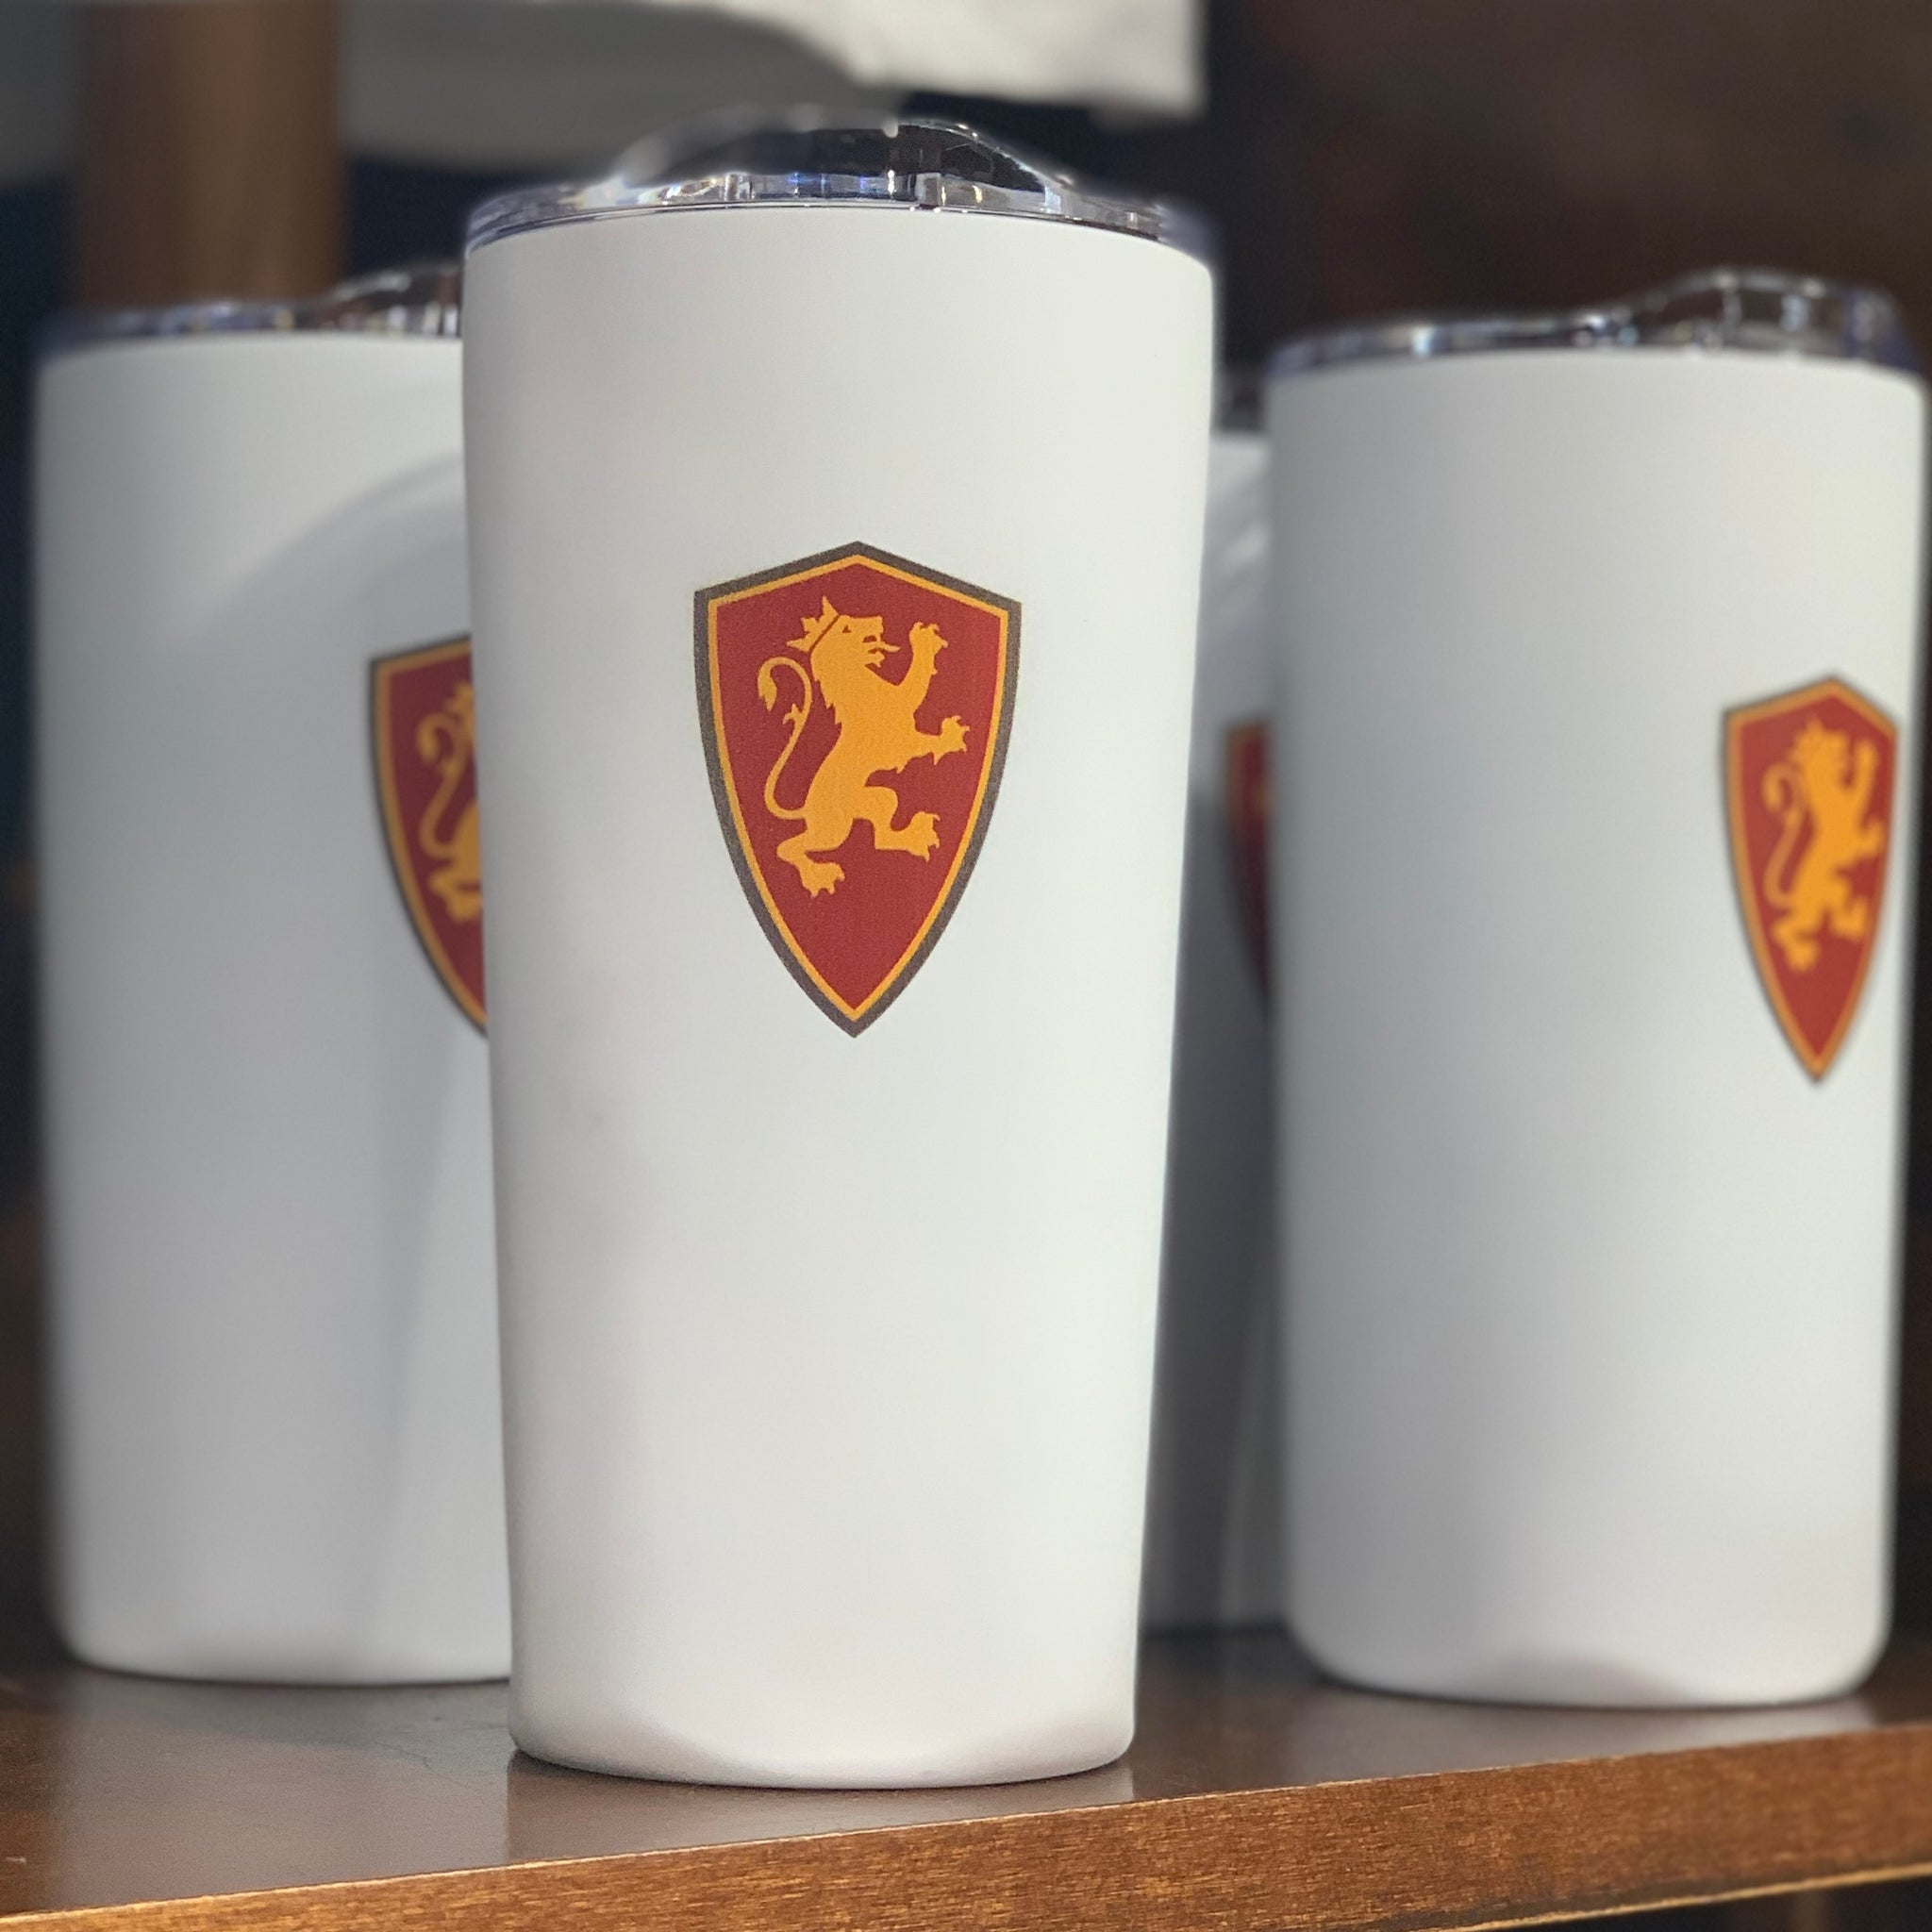 18 oz white tumbler with gold and red lion shield. lid is clear